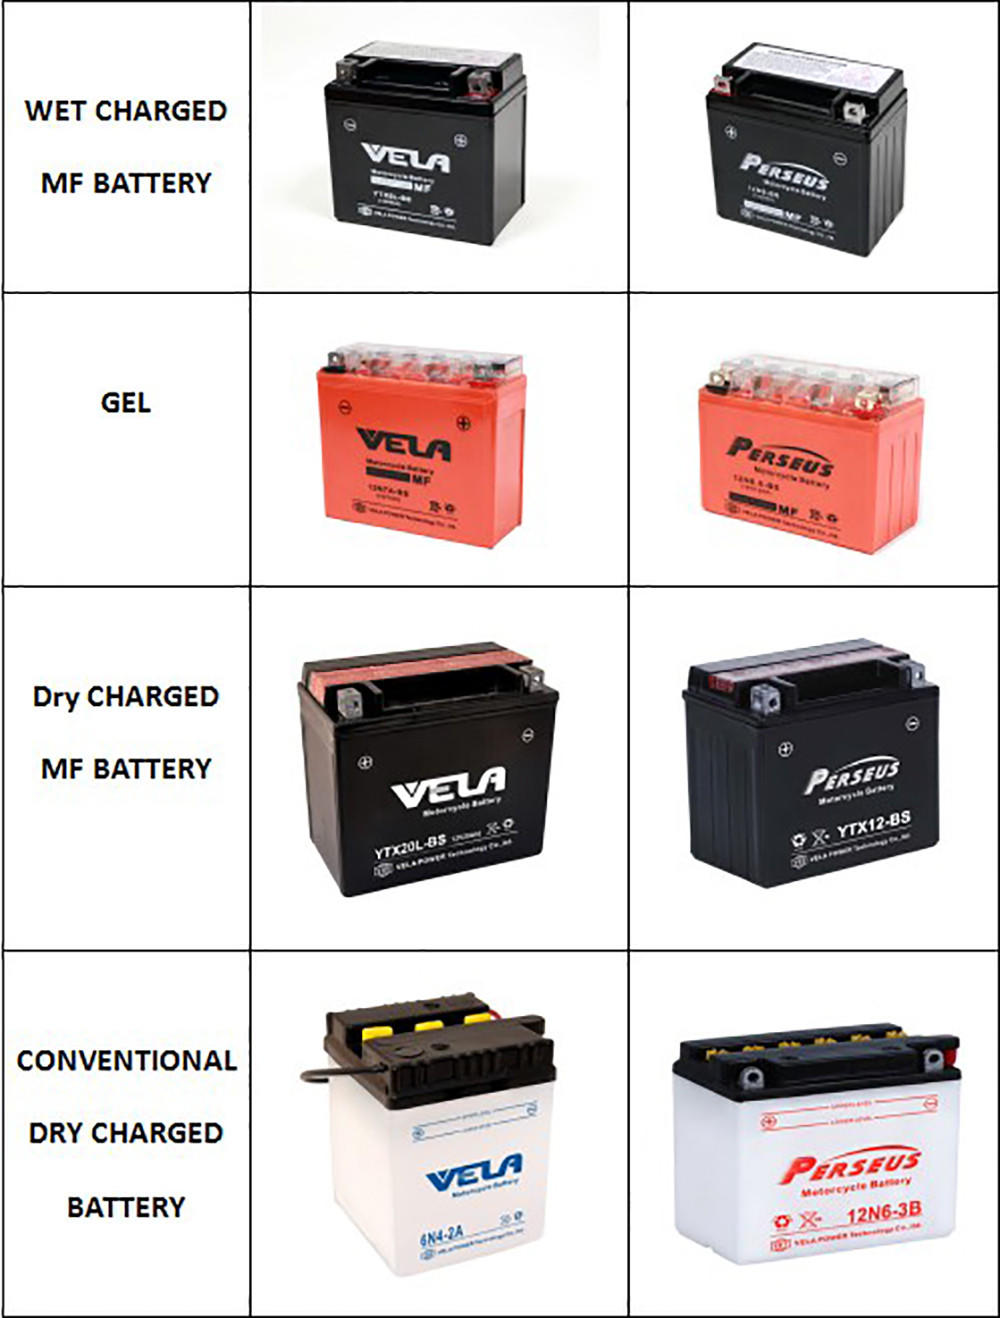 VELA dry cell motorcycle battery widely used for motorcyles